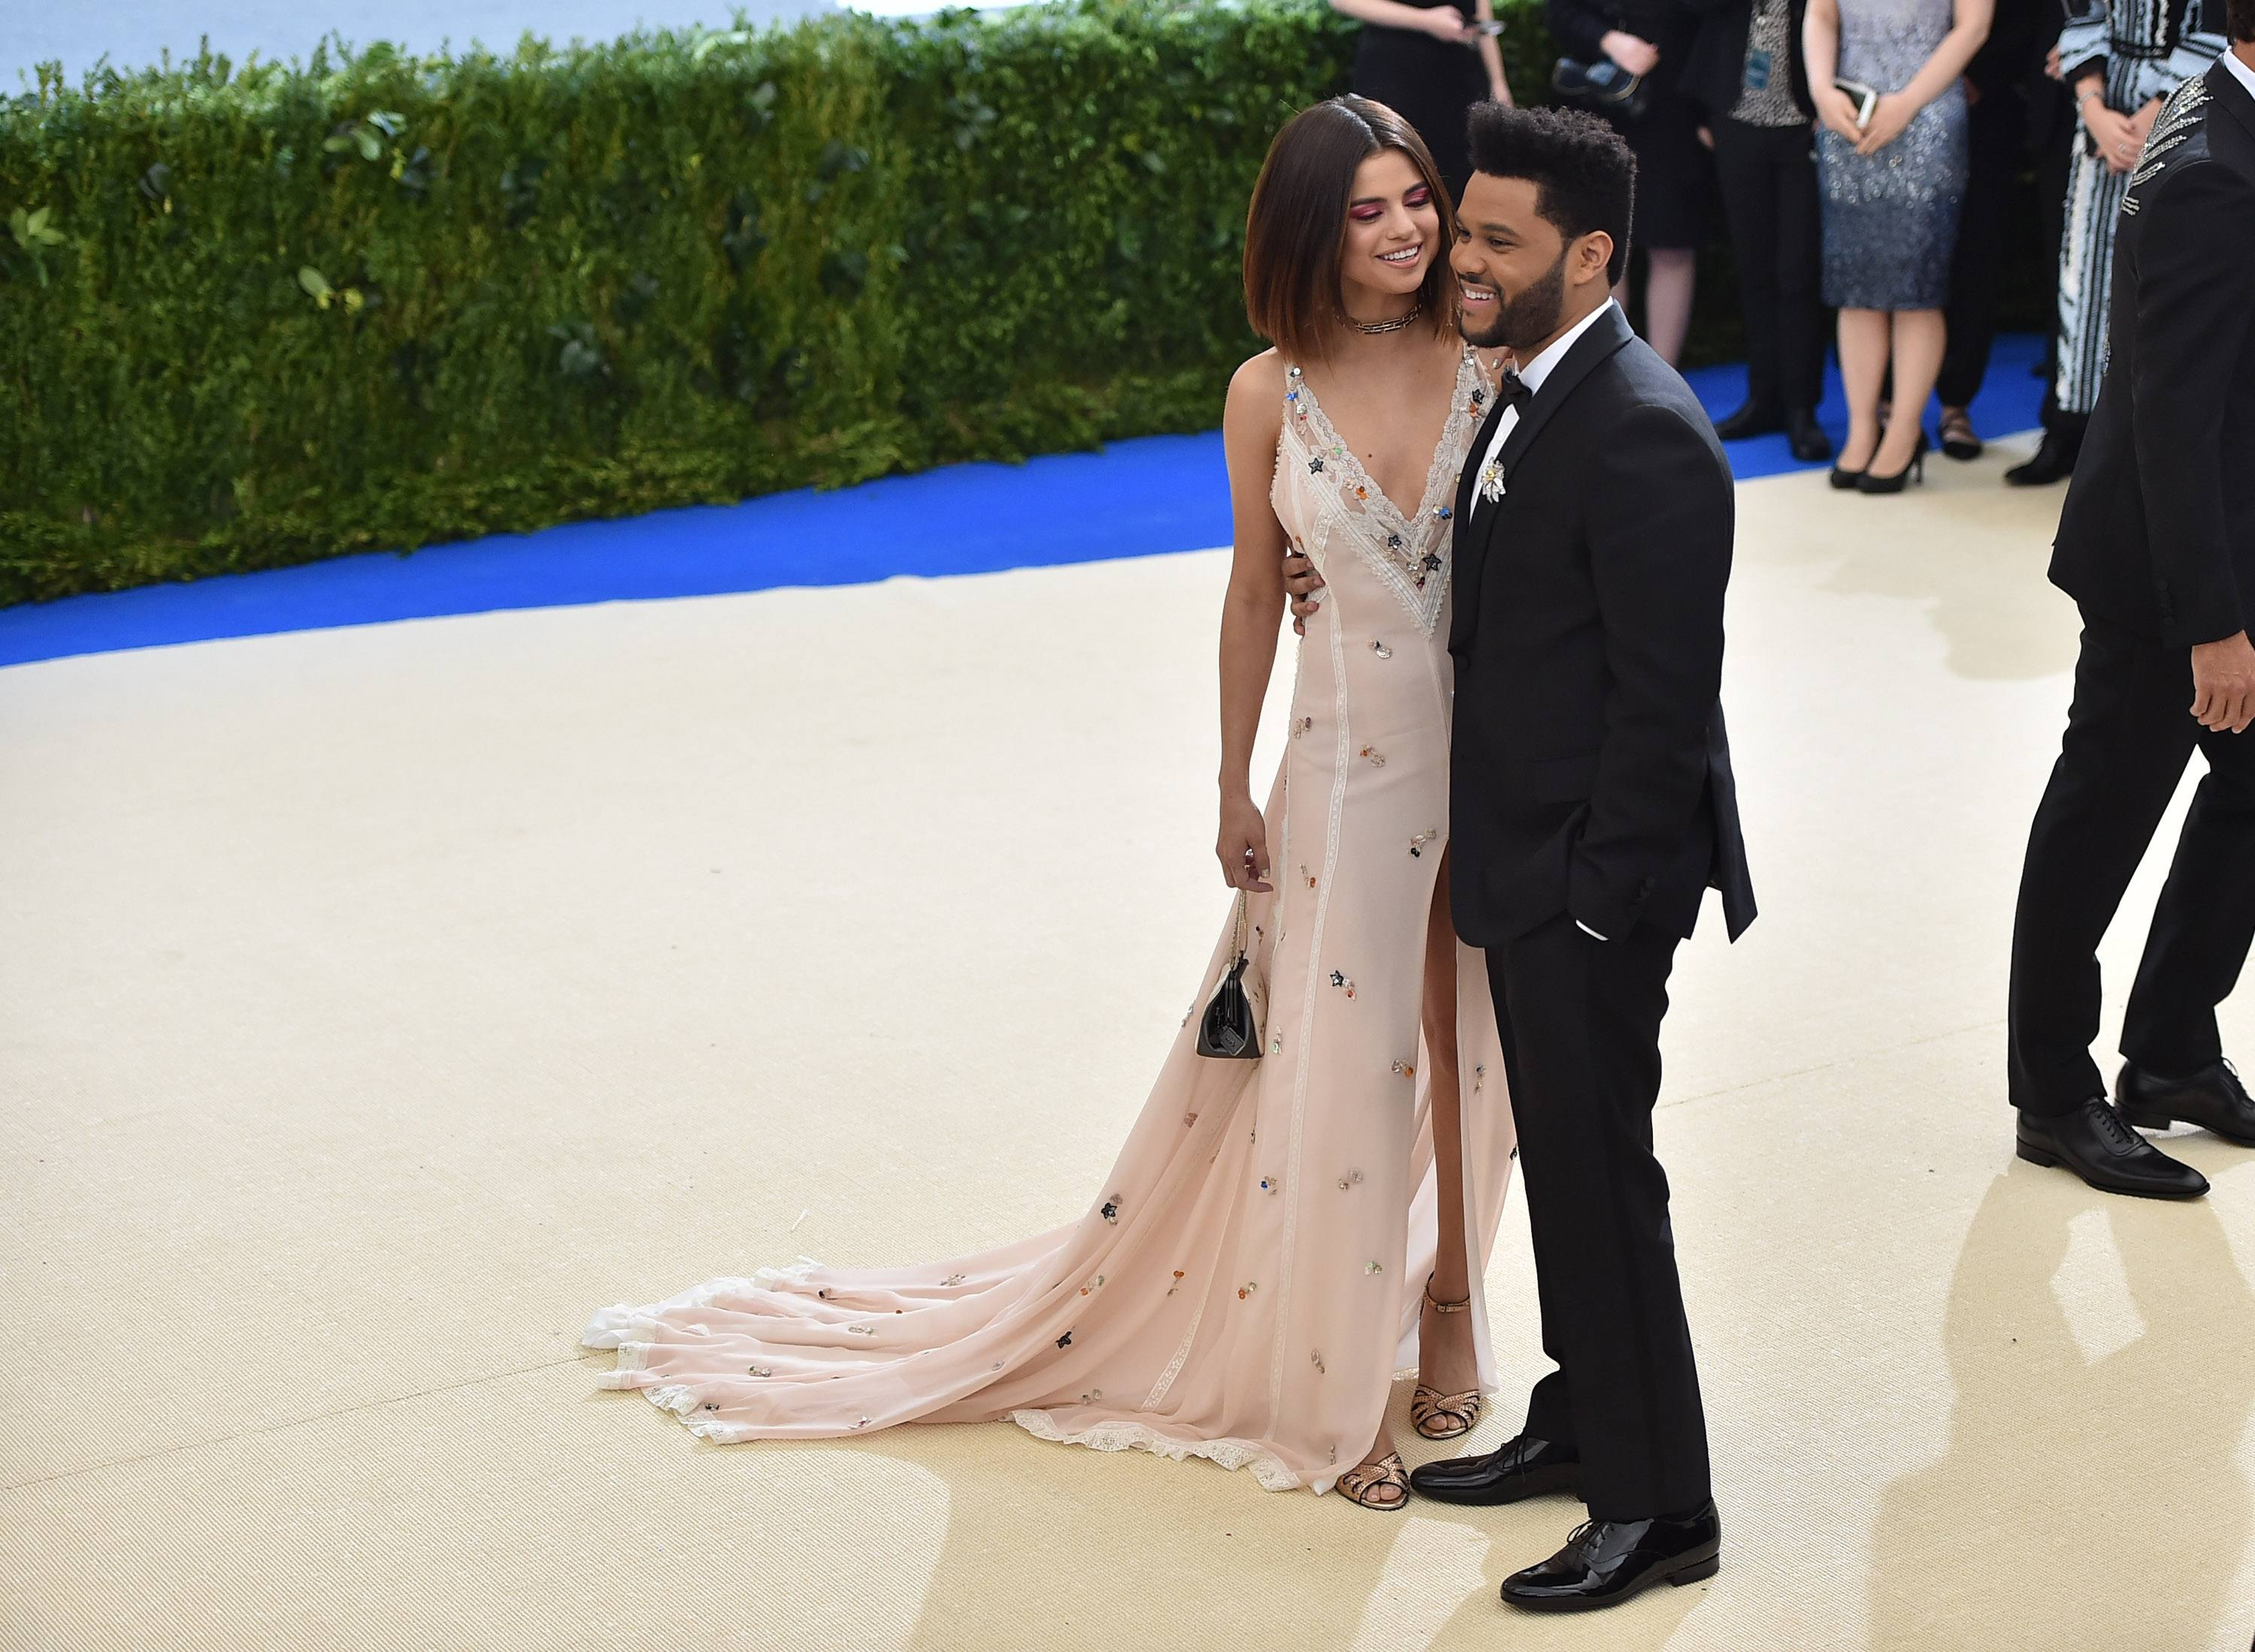 Selena Gomez and The Weeknd pose for cameras at the 2017 Met Gala